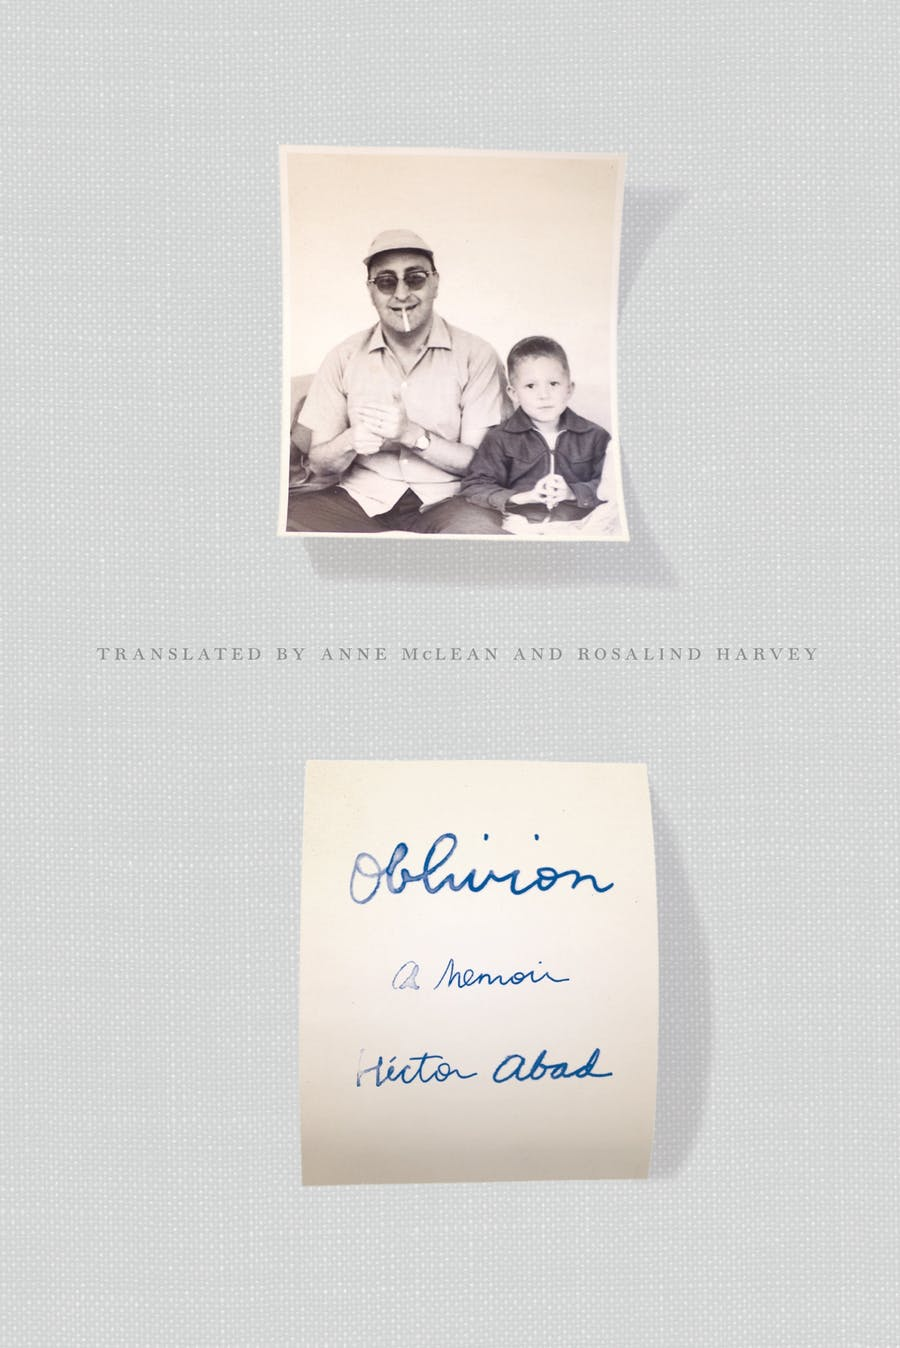 Oblivion by Héctor Abad; Translated from Spanish by Anne McLean and Rosalind Harvey